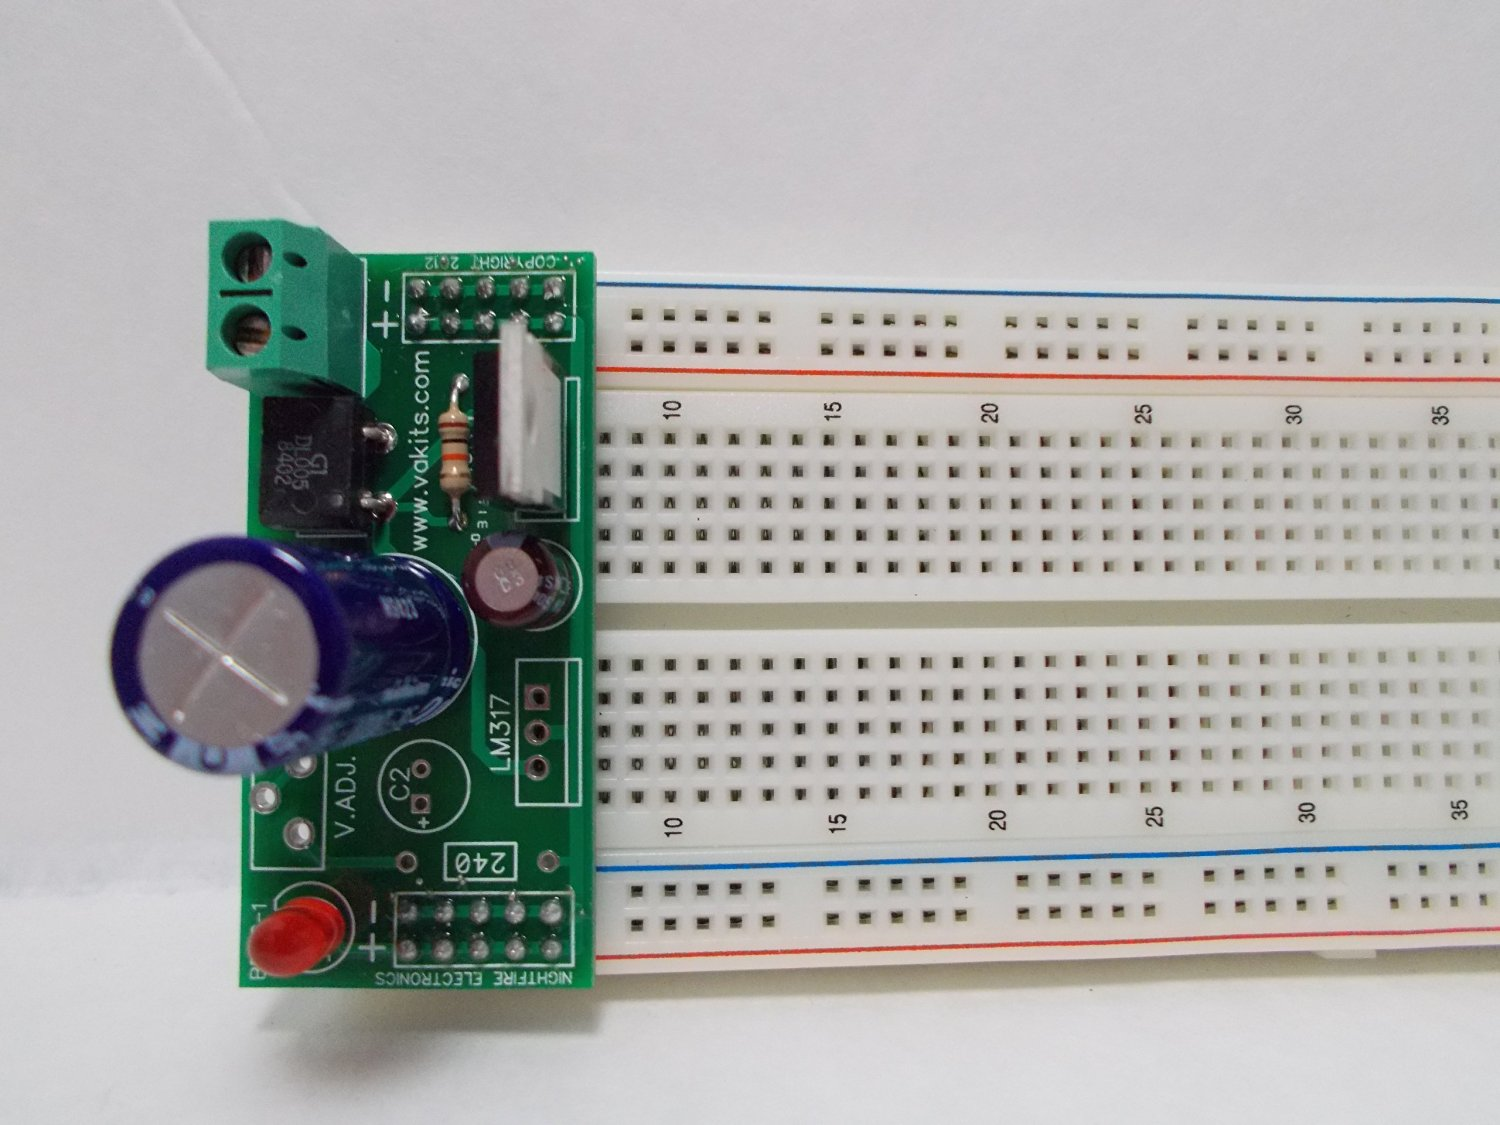 Cheap Solderless Breadboard Power Supply Find Adhesive Electronic Circuit Board Kit For Sale Get Quotations 6 Vdc